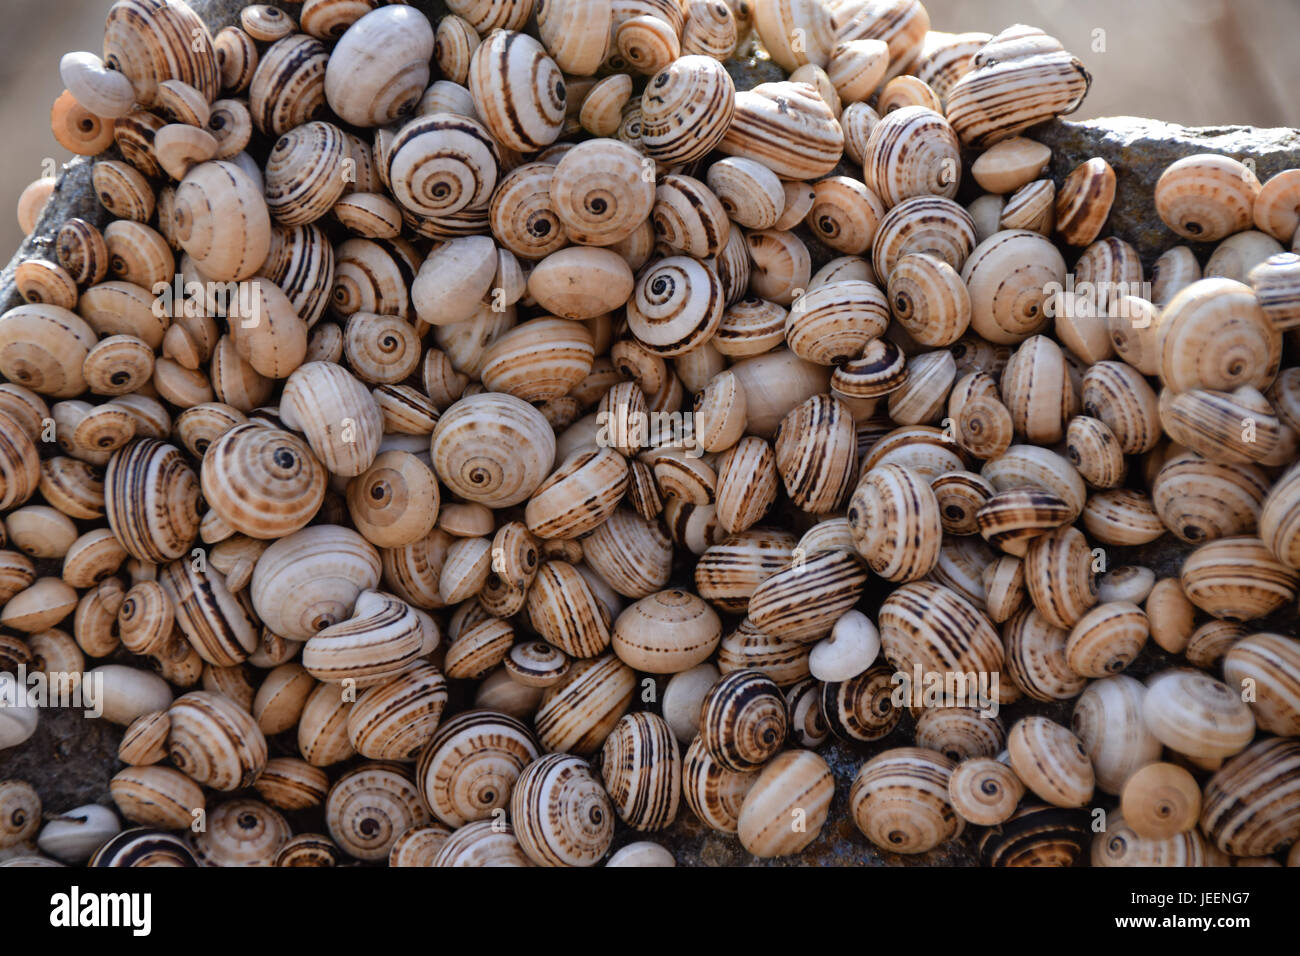 Snails clustered together on a rock in an arid environment to avoid the heat of the soil, Porto Santo Island - Stock Image